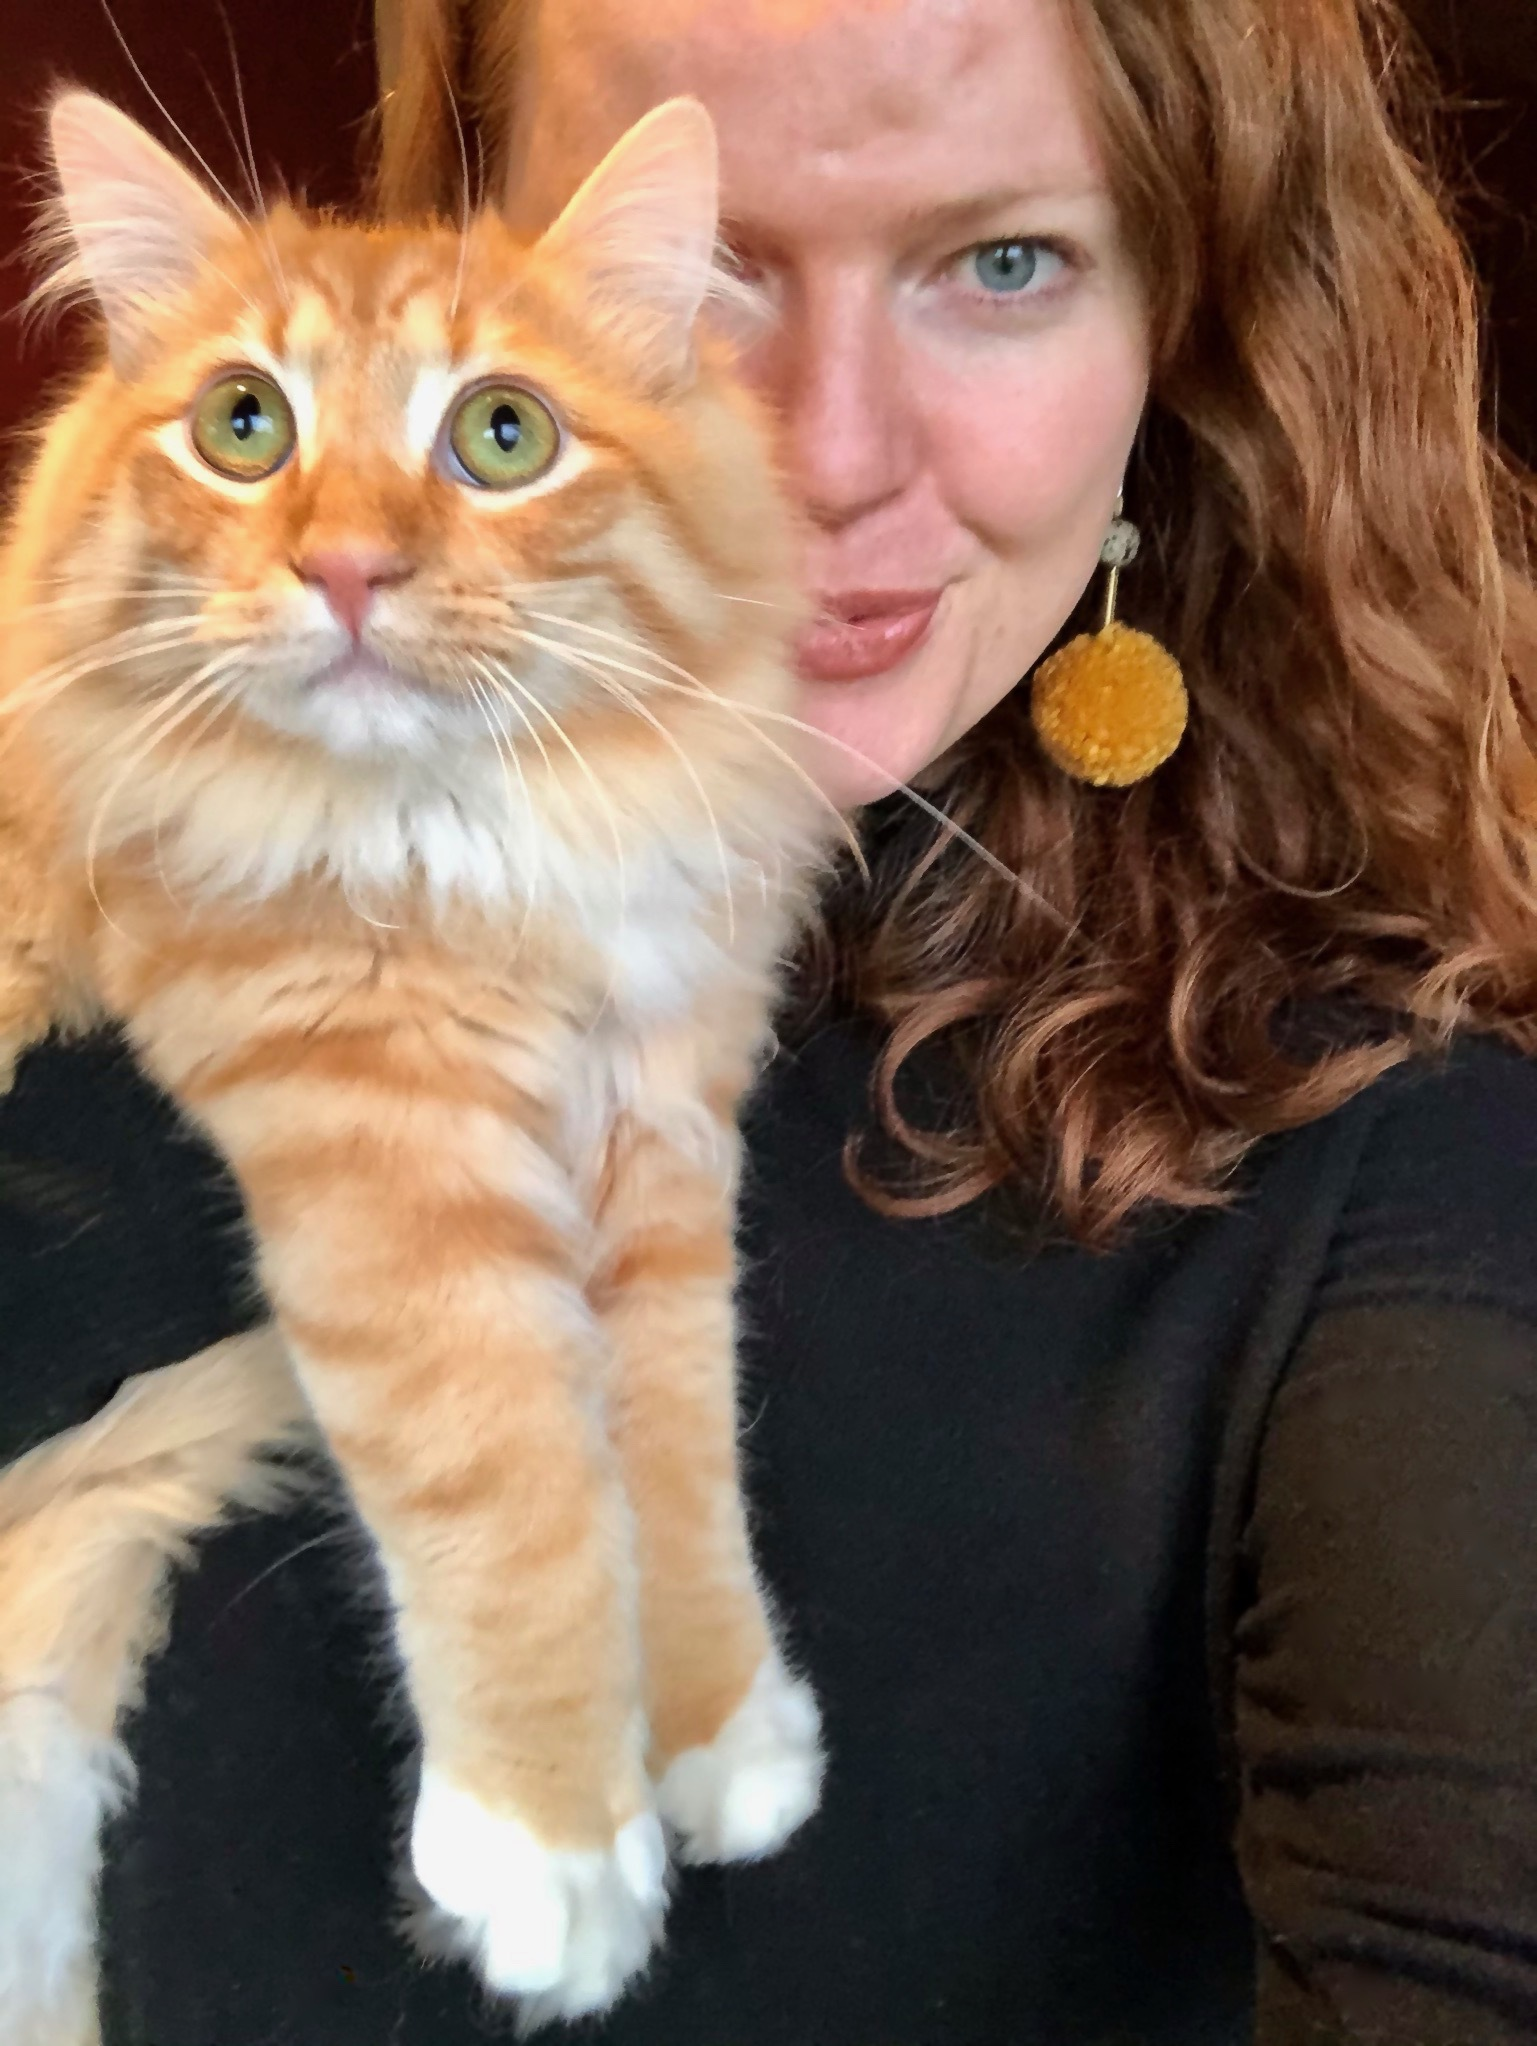 selfie of Krista with her cat. She is piercing her lips and is wearing a black turtle neck, yellow pom-pom earrings, and her red short hair is in curls. Her cat's coloring is orange and white, and the cat has green eyes, which appear aghast.